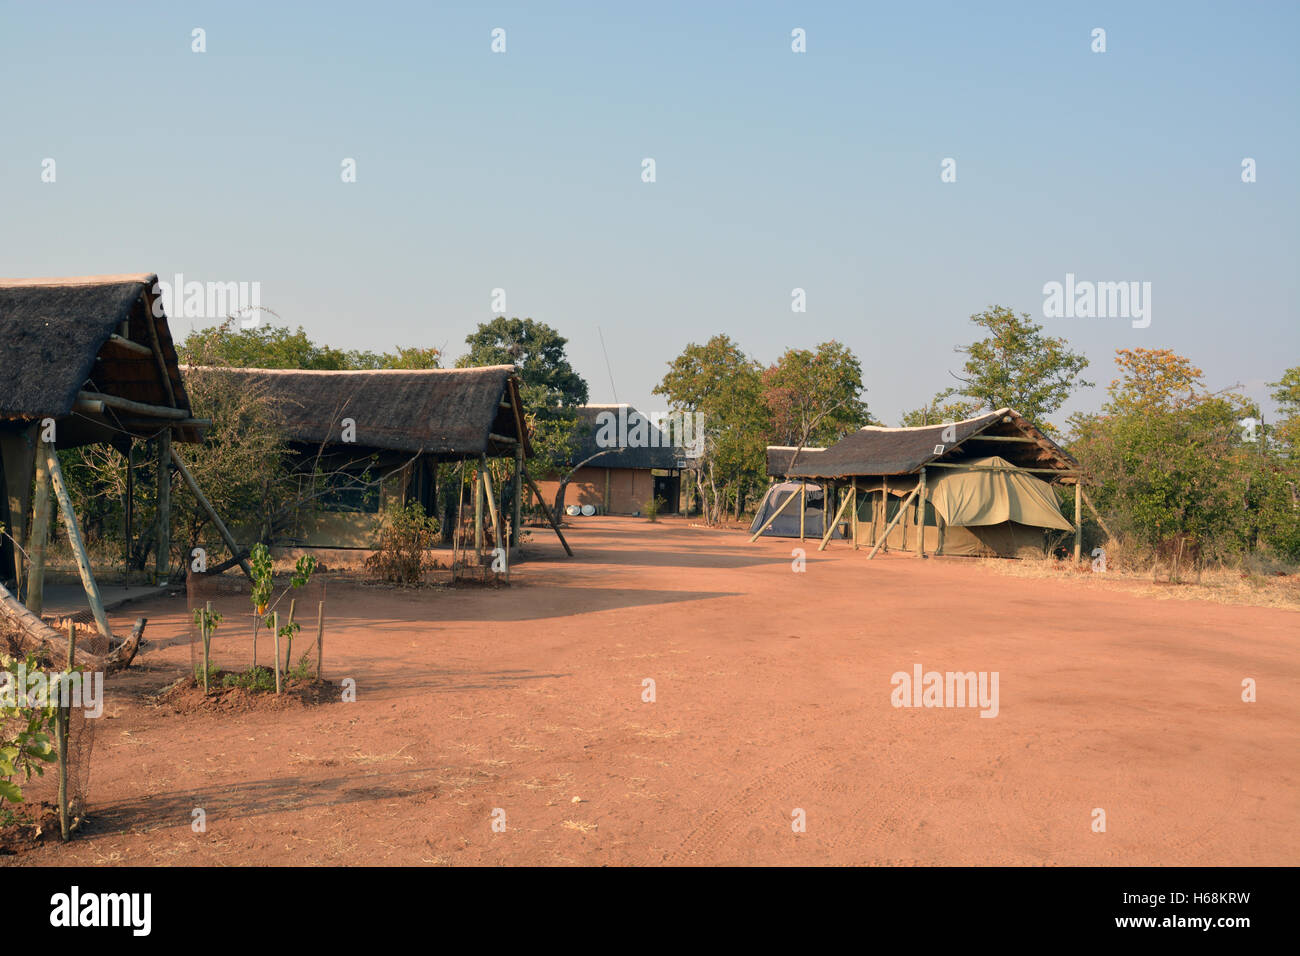 A volunteer safari camp located in the Tuli Wilderness region of Botswana, Africa. - Stock Image